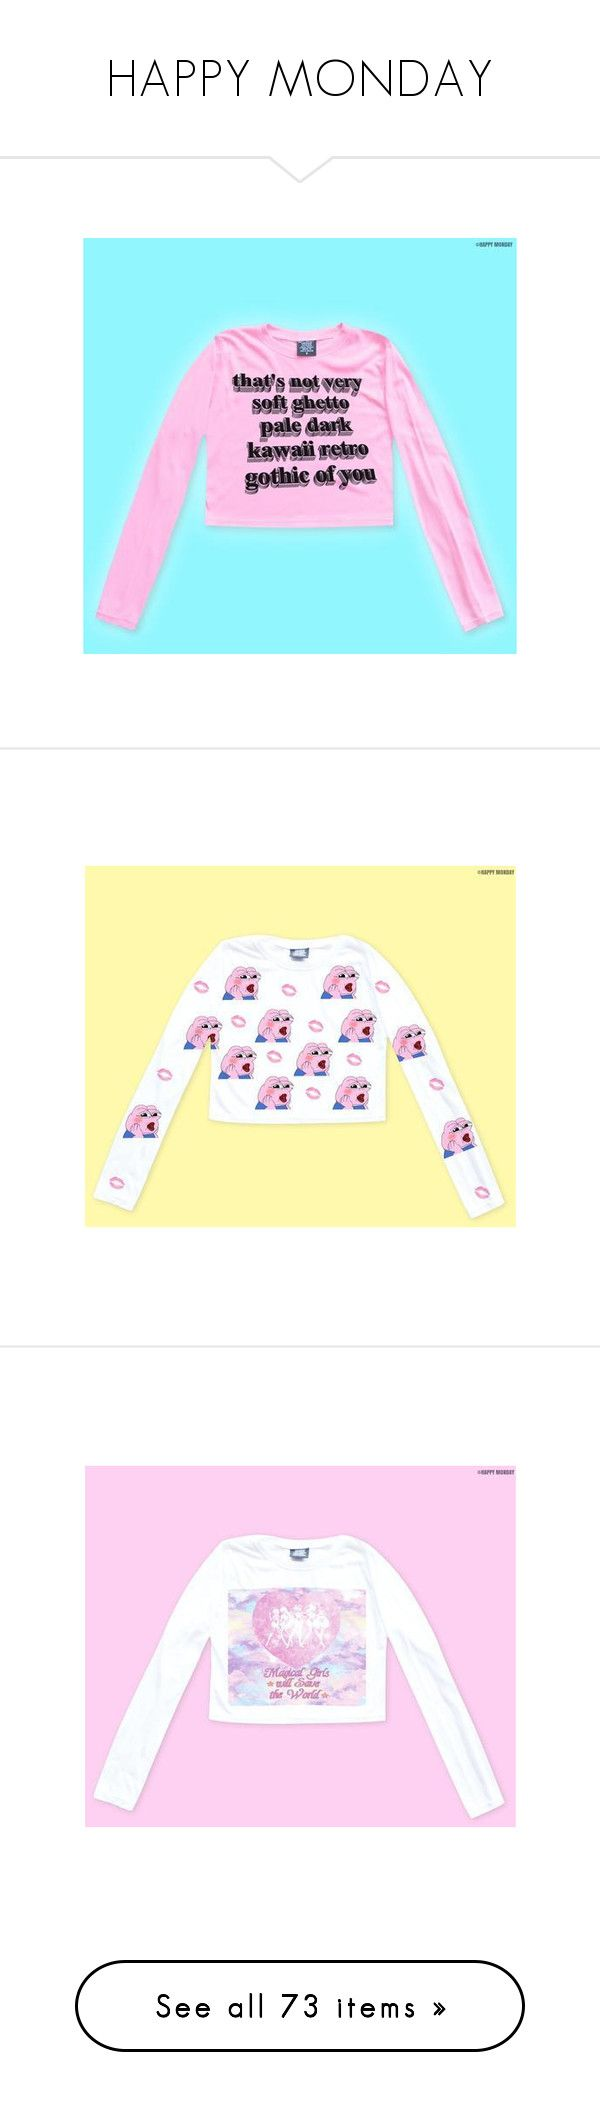 """""""HAPPY MONDAY"""" by viva-la-revolucion ❤ liked on Polyvore featuring tops, sweaters, pink sweater, long sleeve sweater, pink top, extra long sleeve sweater, long sleeve tops, yellow top, yellow sweater and pink long sleeve top"""